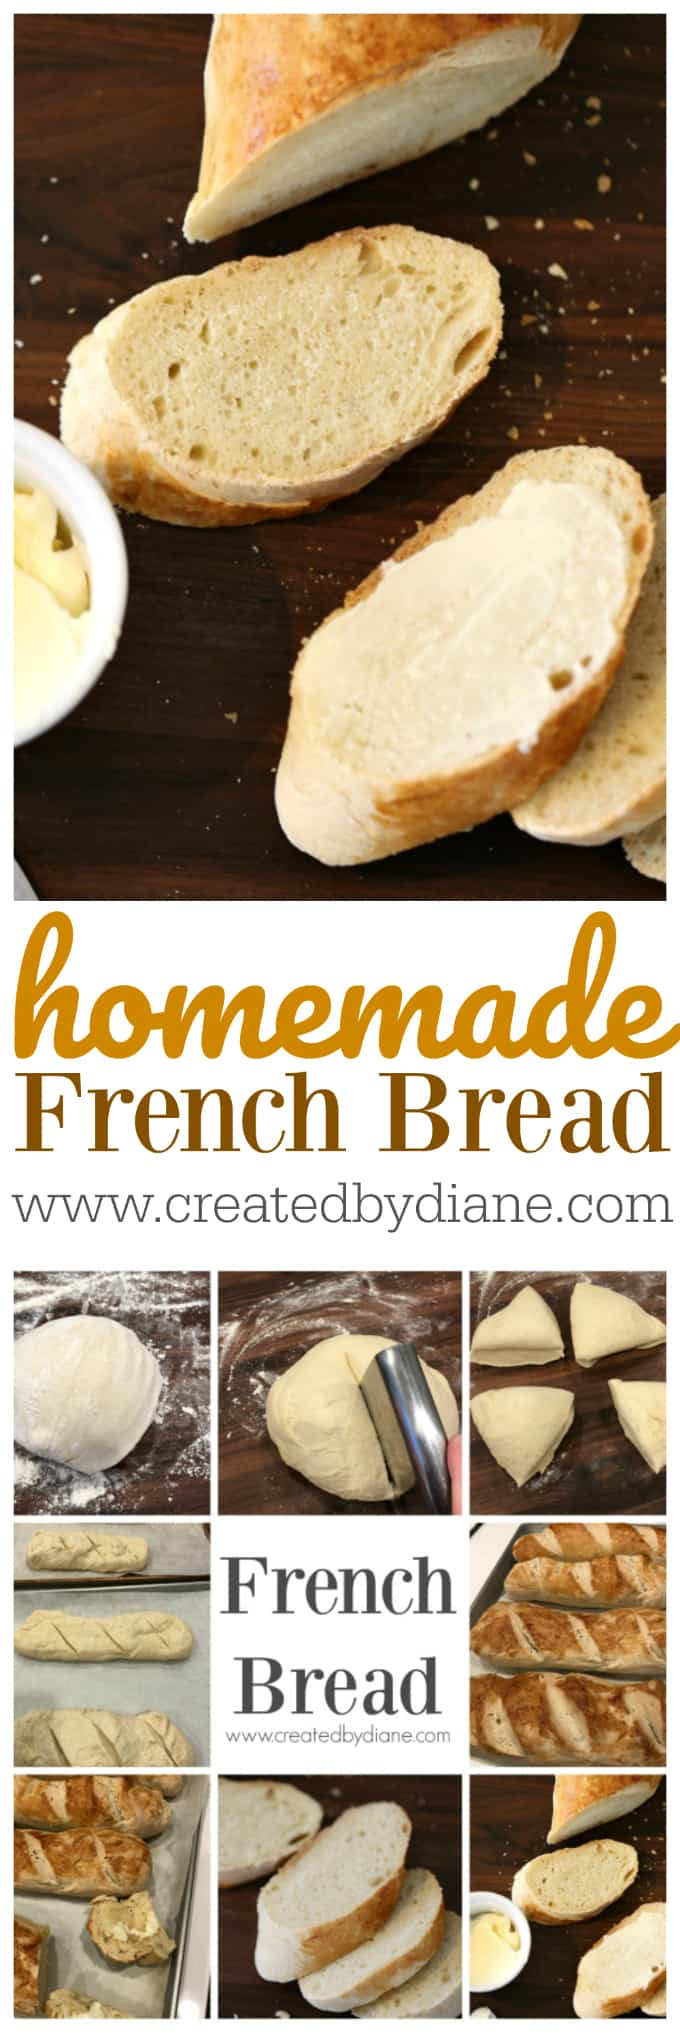 homemade french bread recipe www.createdbydiane.com